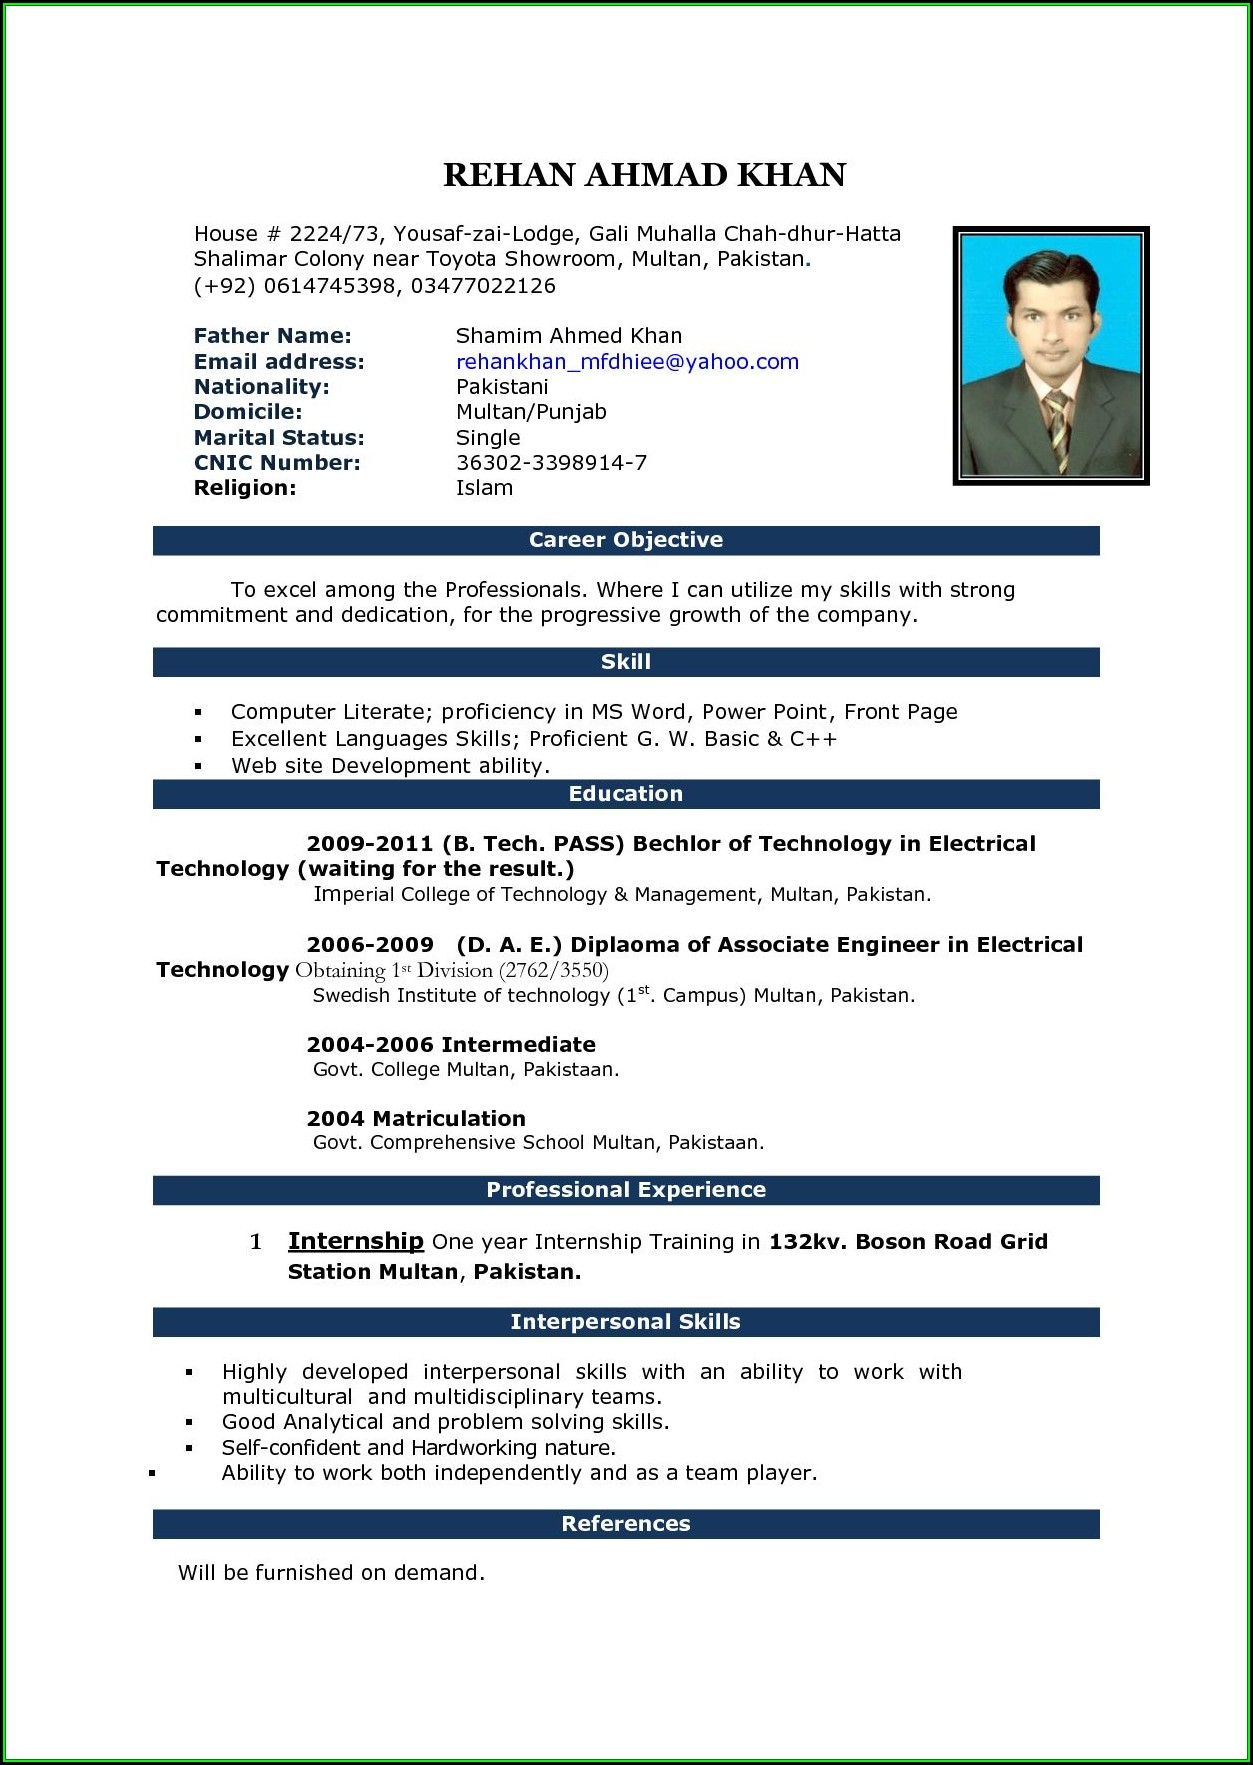 Resume Format Free Download In Ms Word